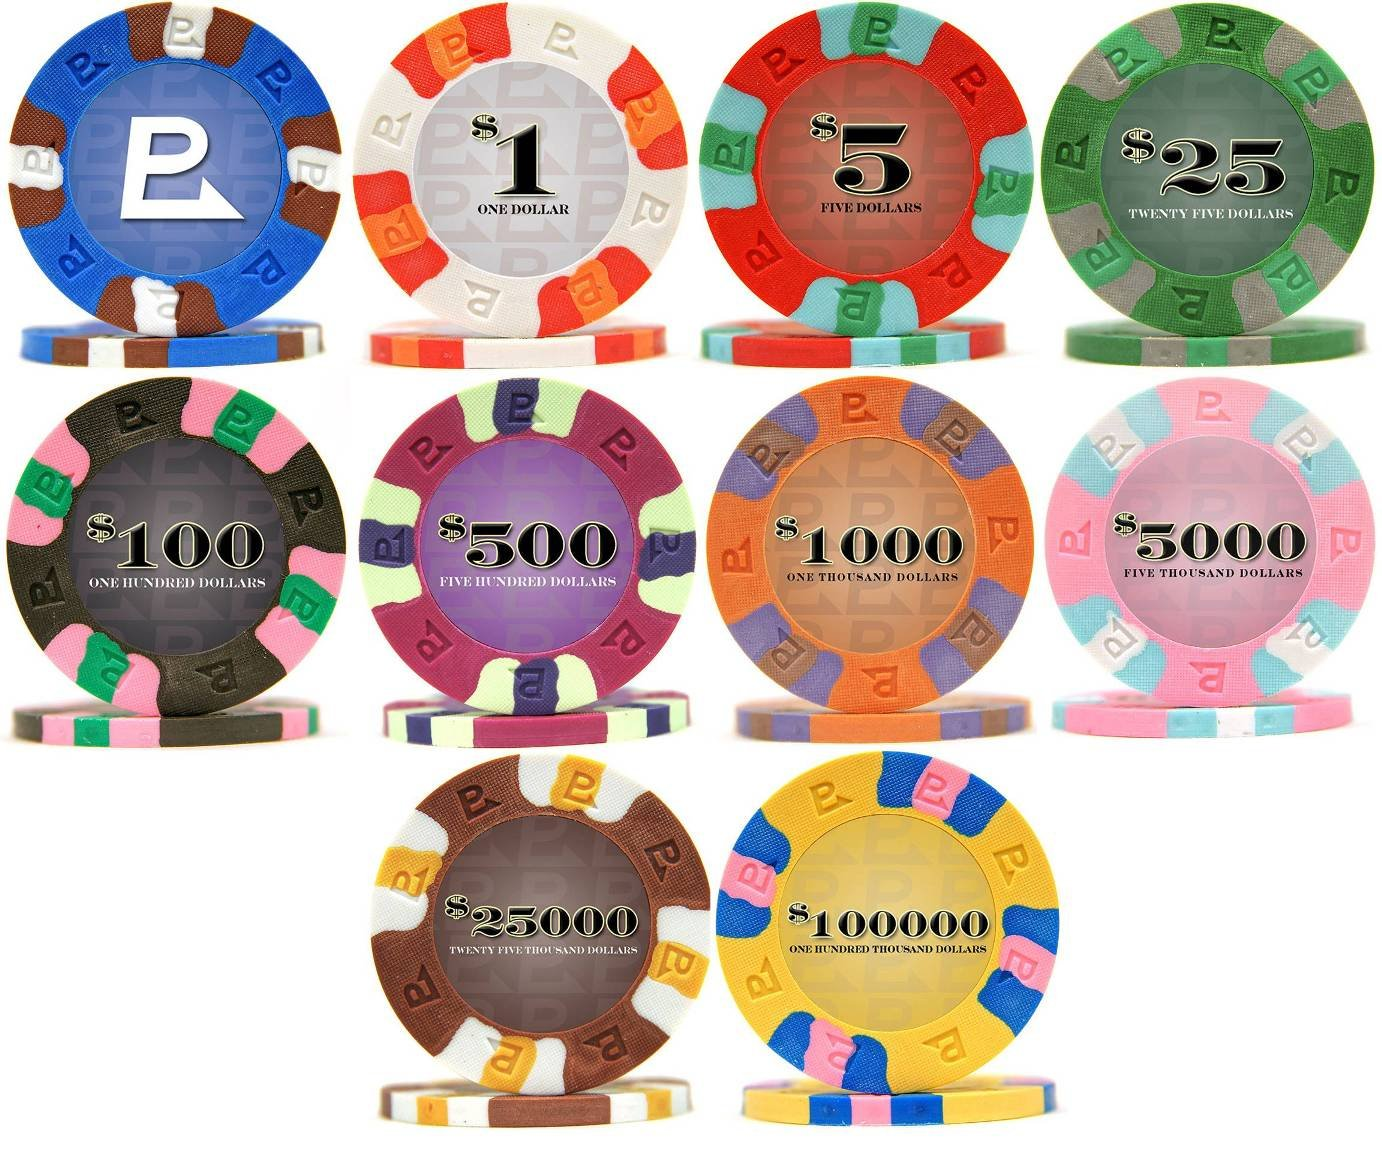 9 gram casino size clay poker chips everestpoker.com gambling ic1fag online online poker poker